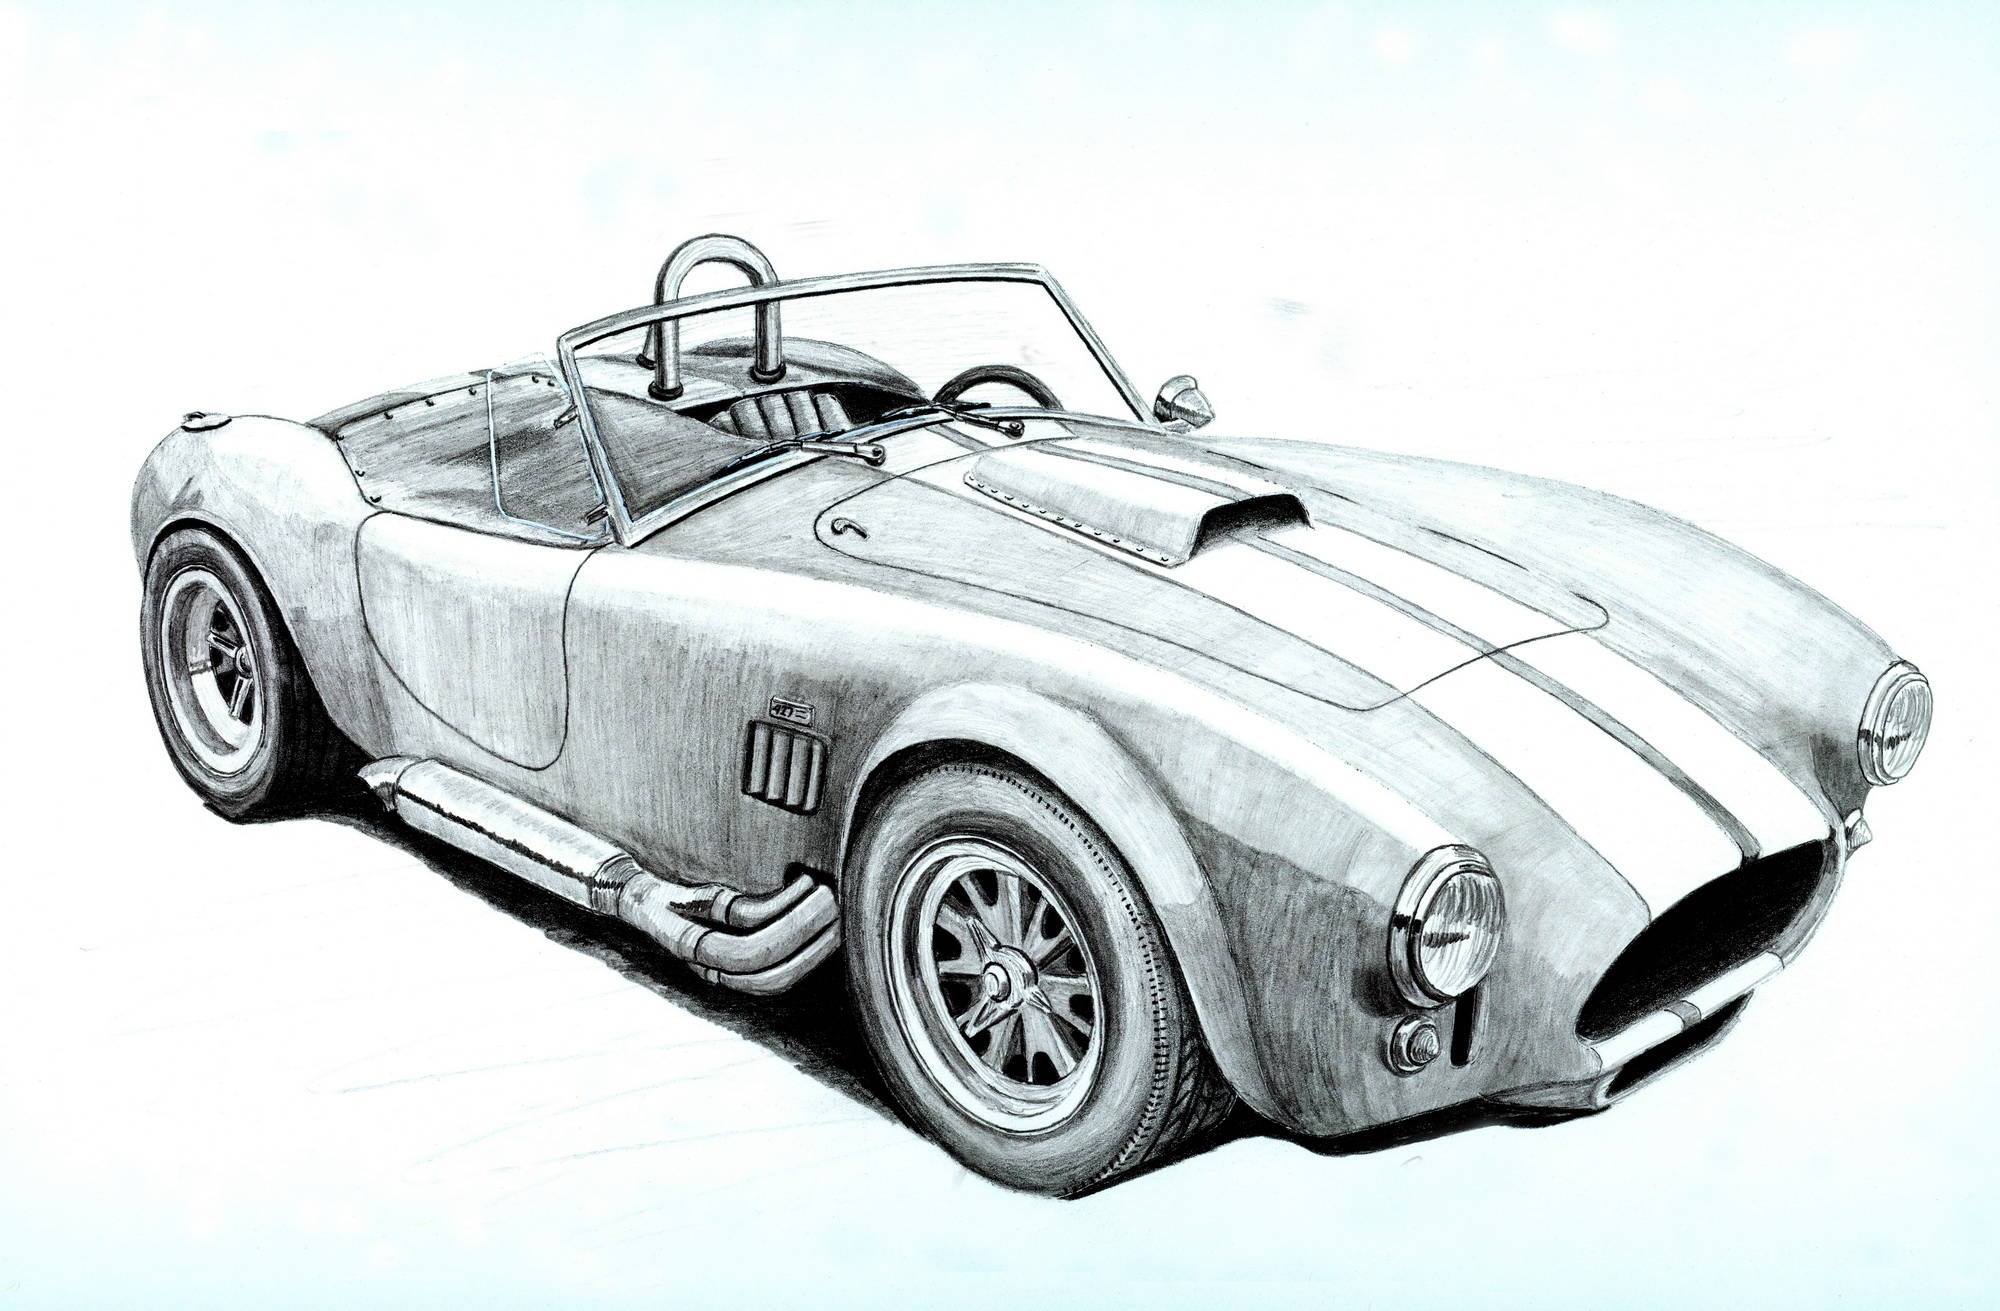 AC Shelby Cobra  Home  Facebook